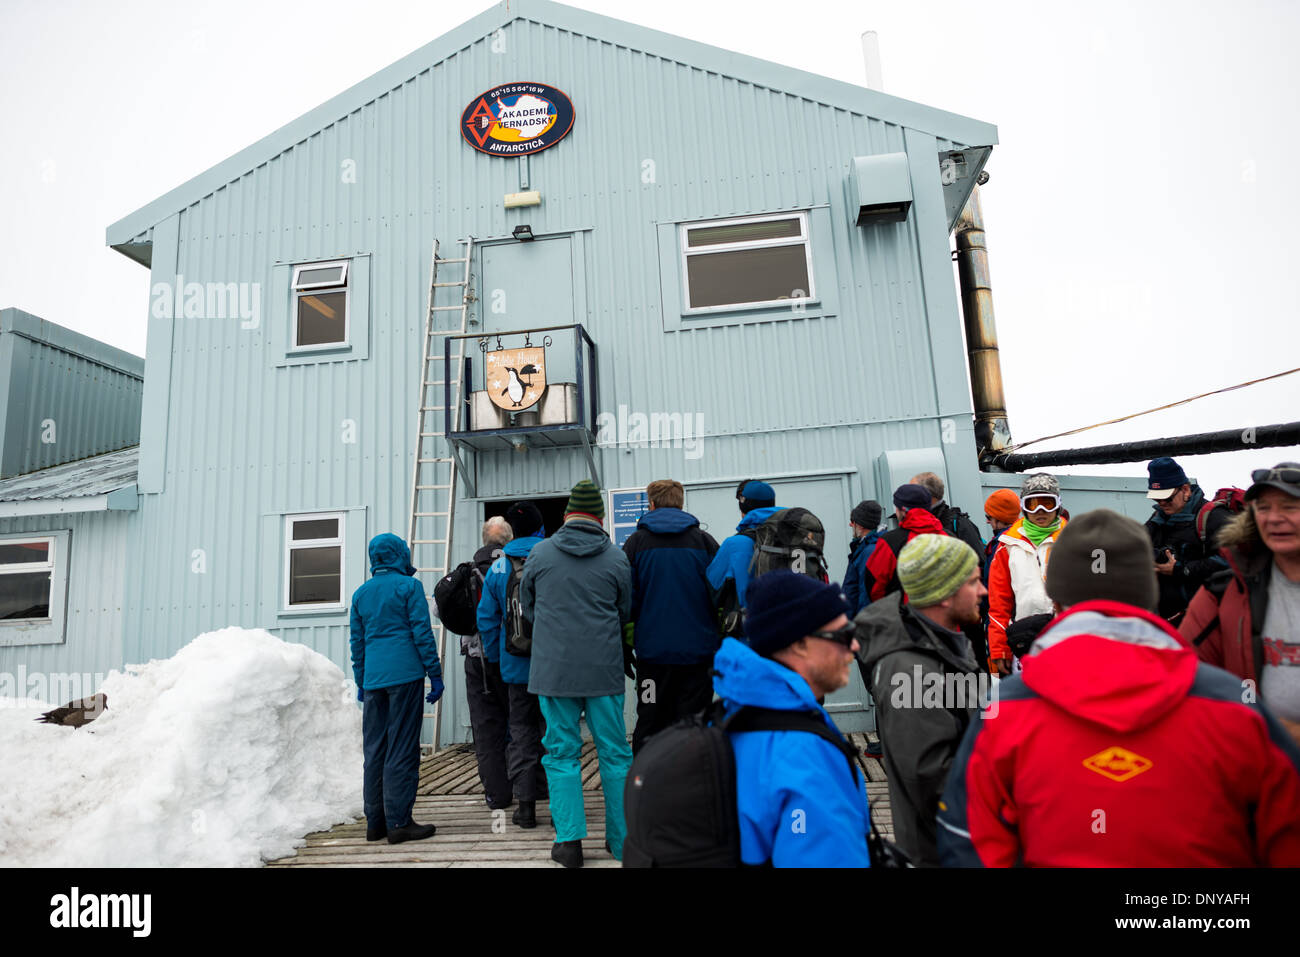 ANTARCTICA - Tourists line up to enter the Ukrainian Vernadsky scientific research base on the Antarctic Peninsula. Originally established by the British first as Base F in the British Falkland Islands Dependencies and later as Faraday Station, it was transferred to the Ukraine in 1996 and renamed Vernadsky Research Base after Soviet mineralogist Vladimir Vernadsky. - Stock Image